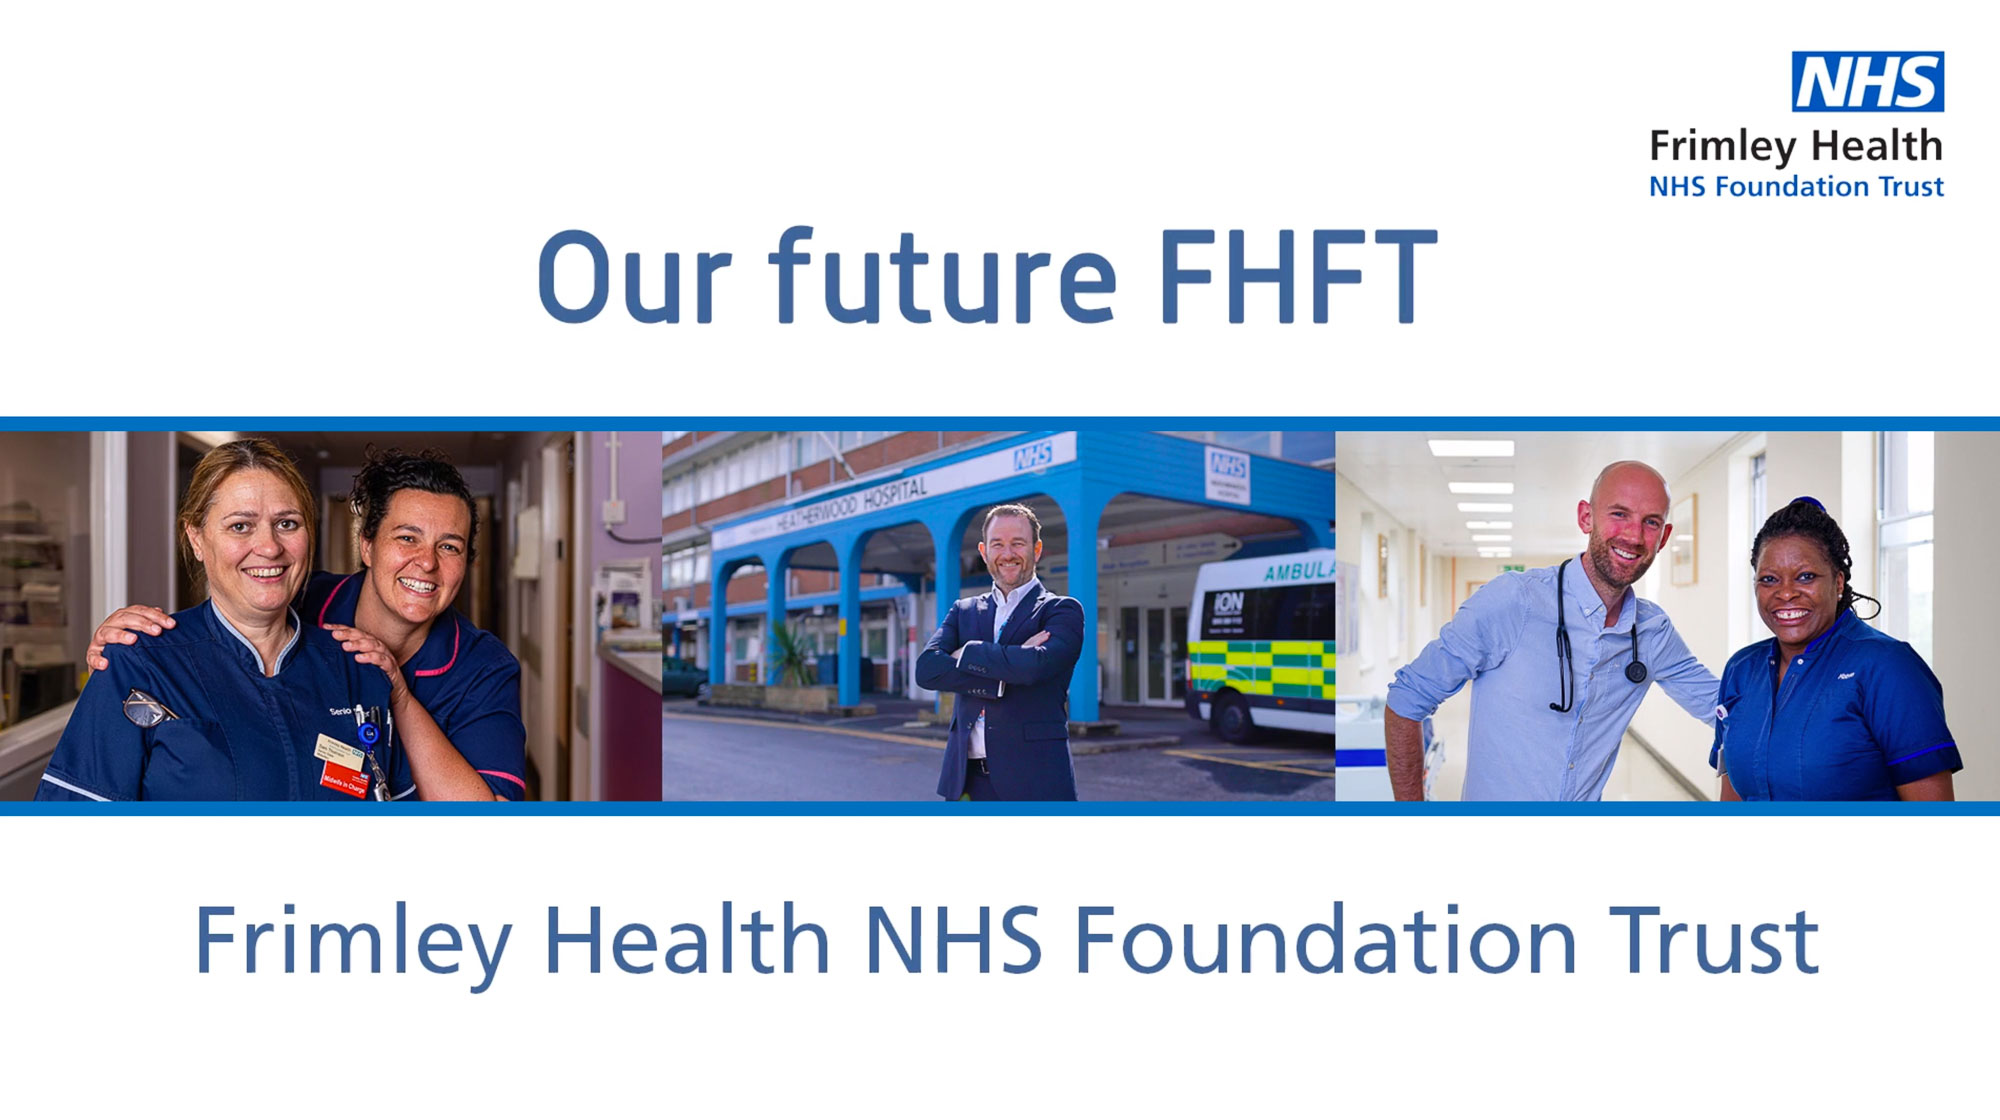 Internal comms video production for NHS Hospital